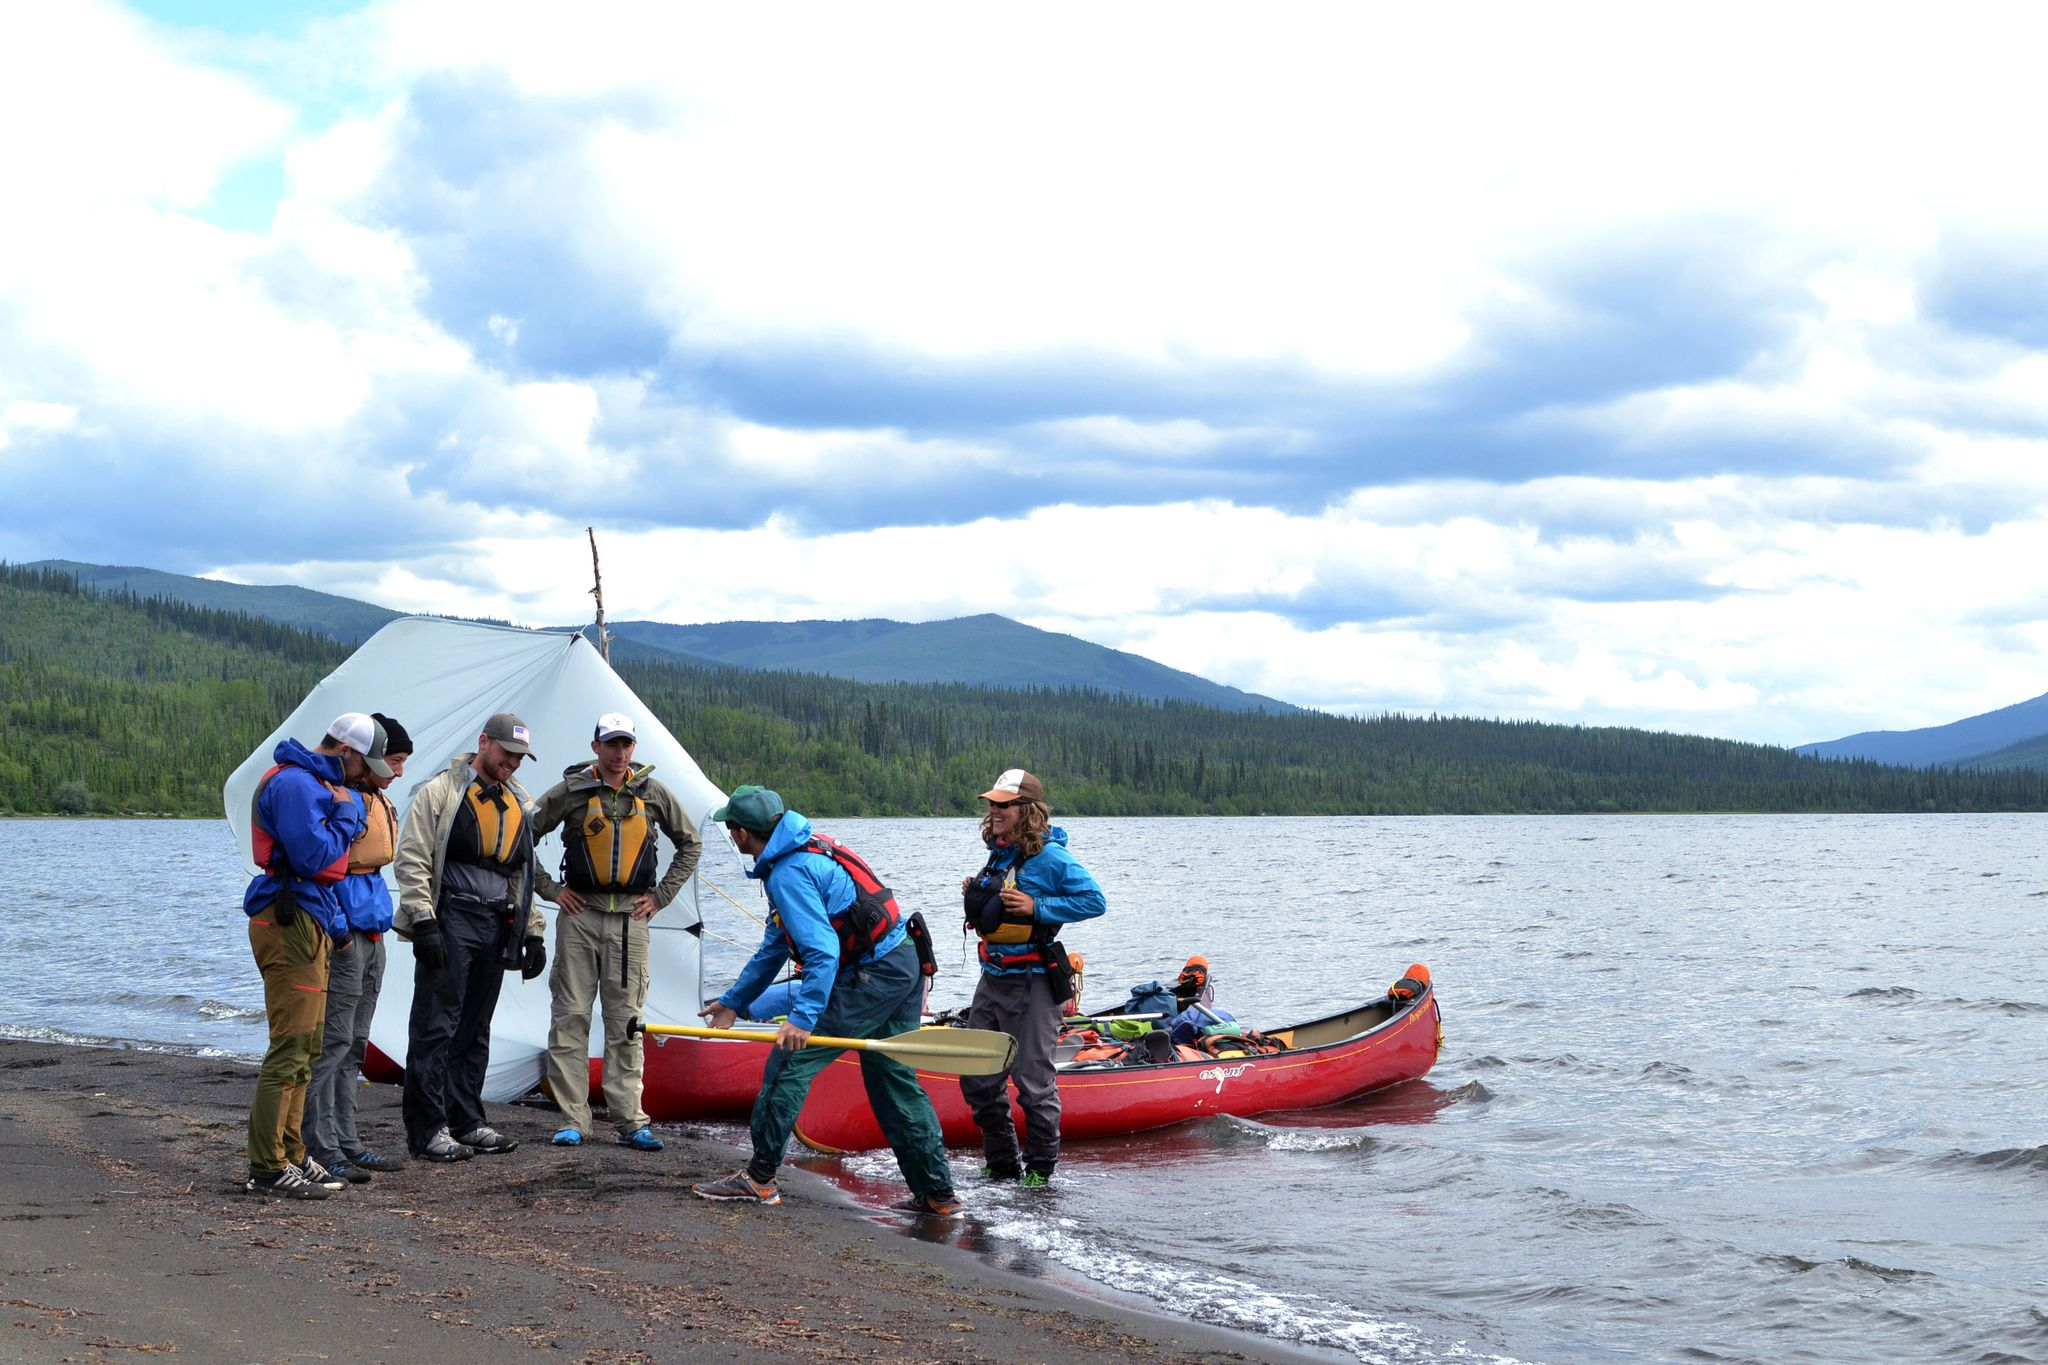 Summer Program - Canoeing | NOLS Summer Semester in the Yukon